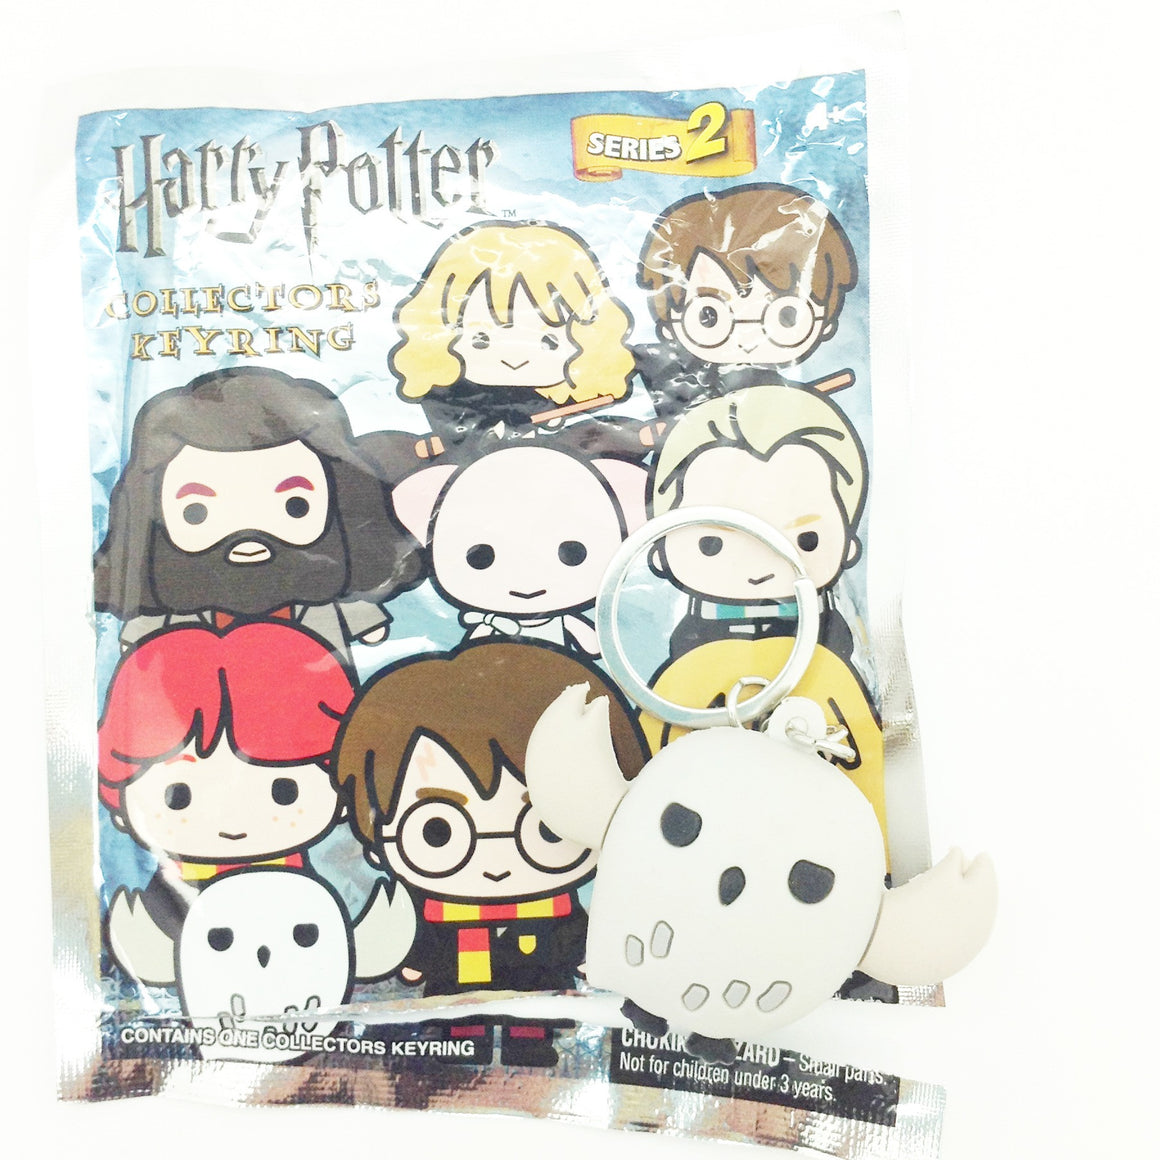 Harry Potter Series 2 Collector Keyring - Hedwig